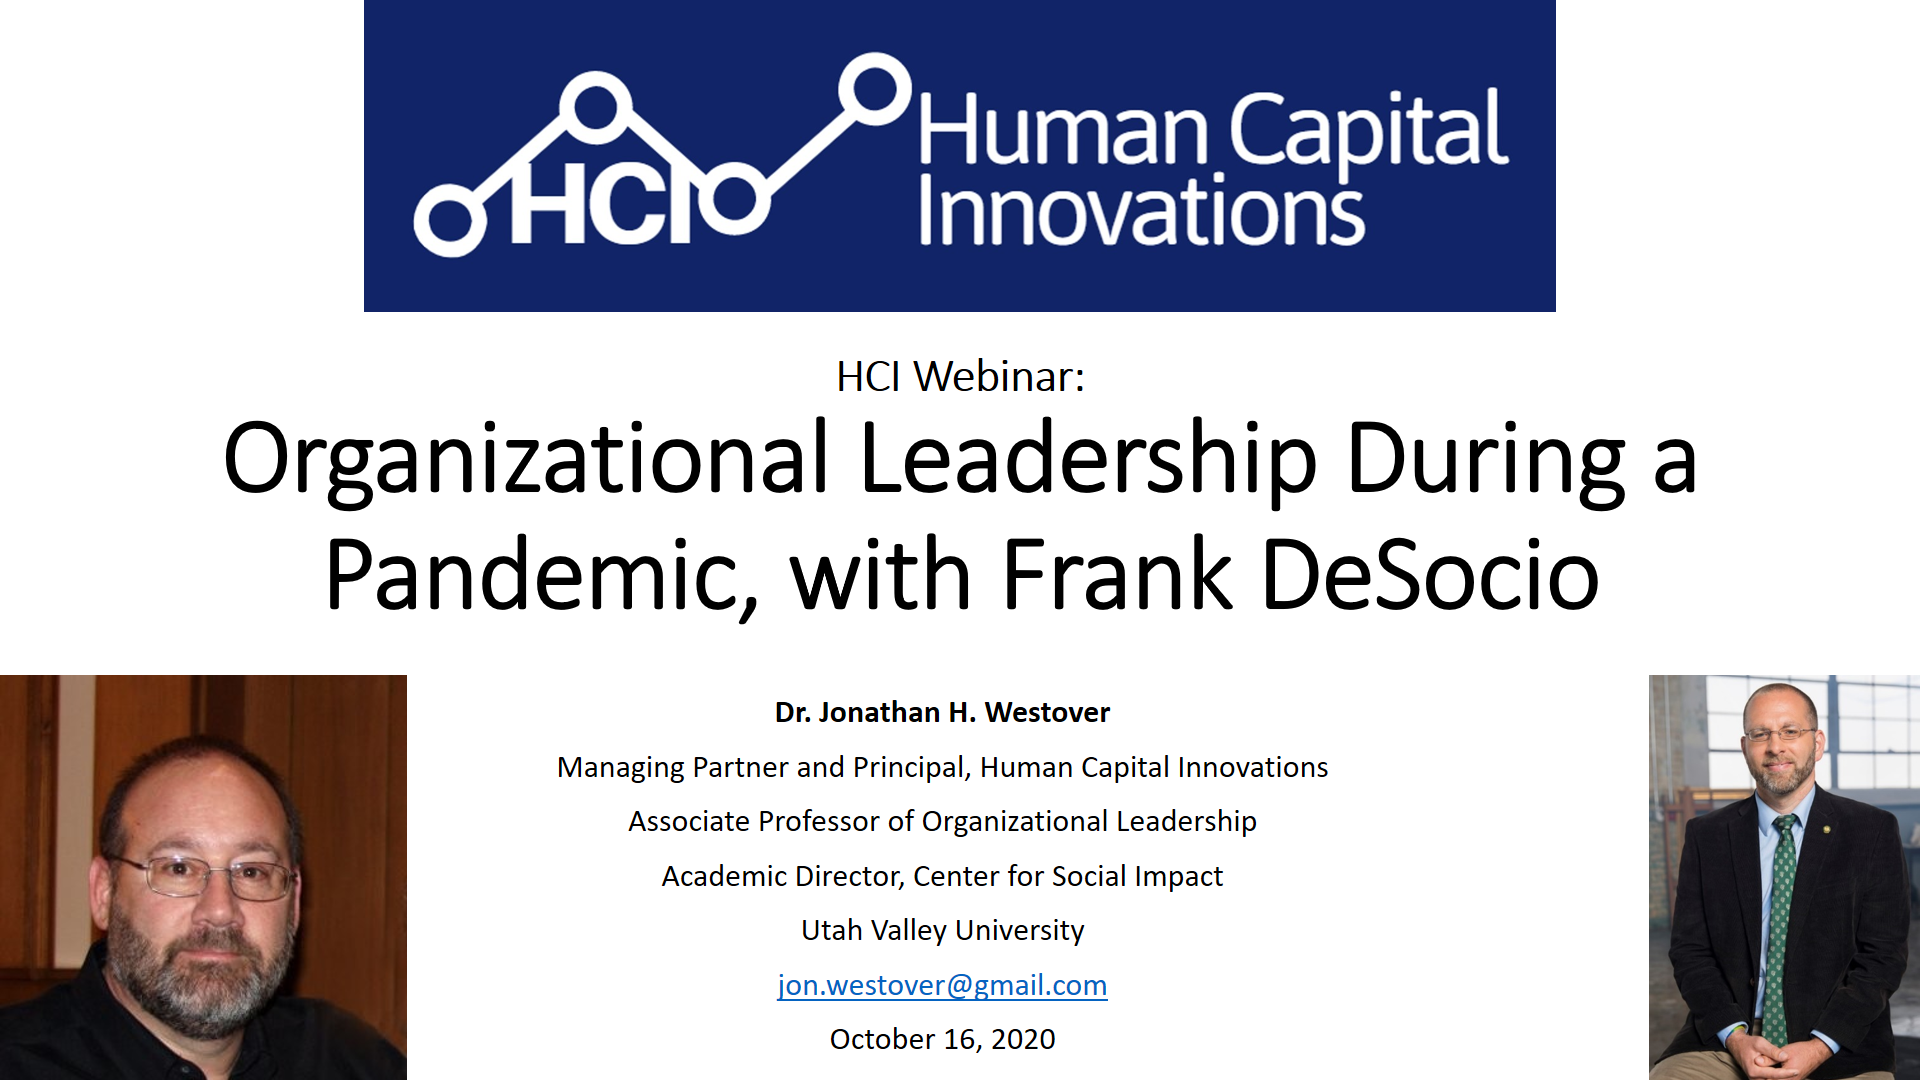 Organizational Leadership During a Pandemic